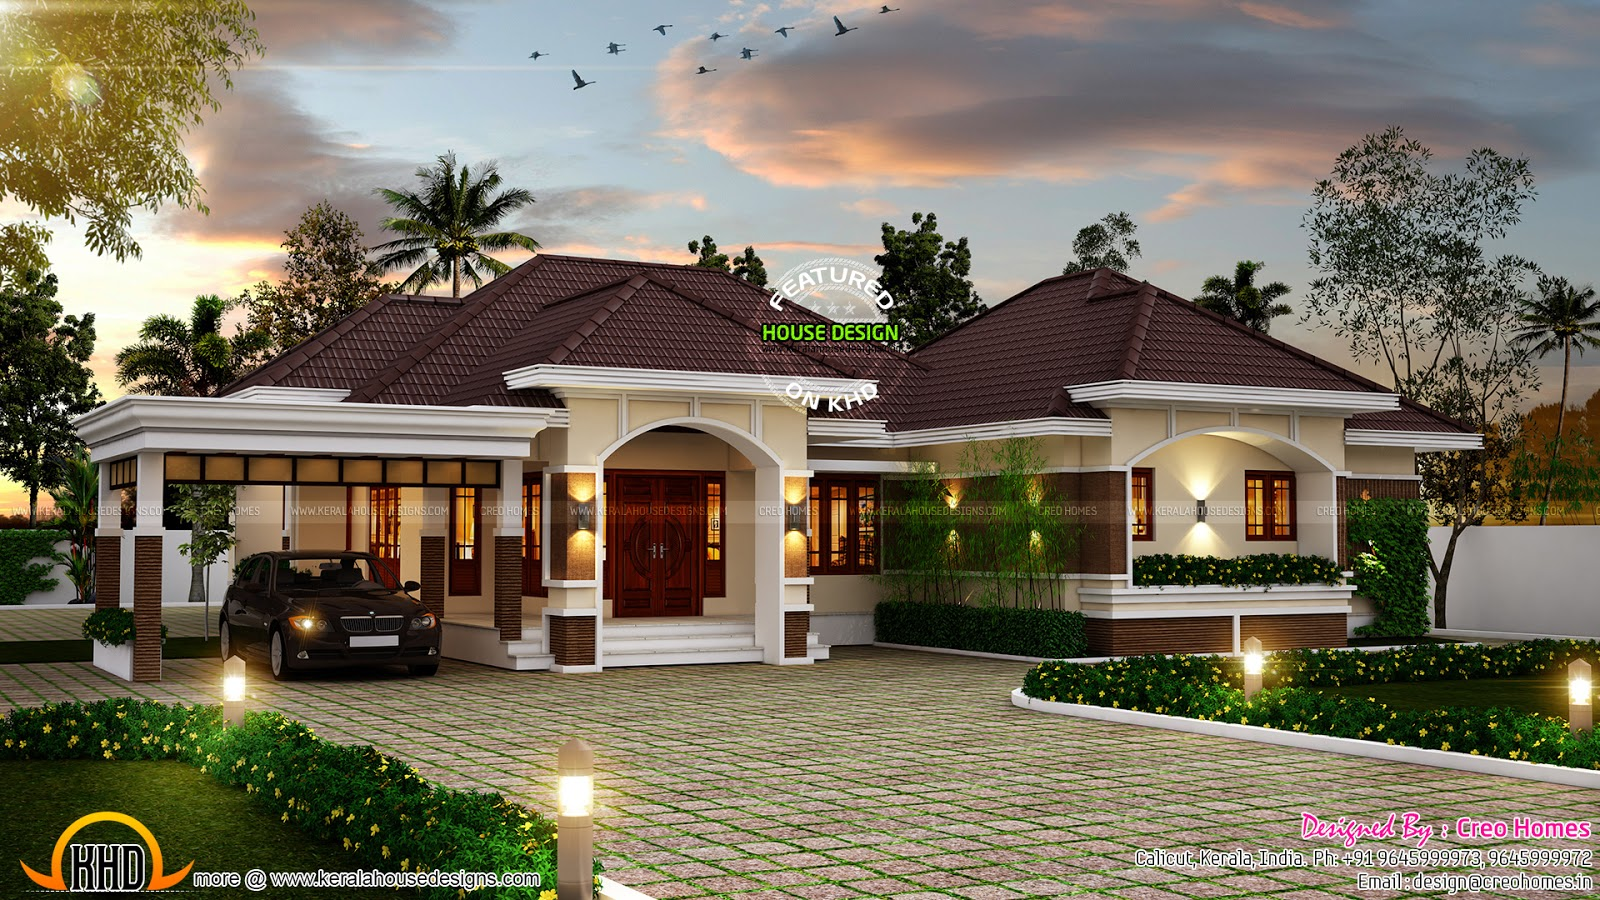 Outstanding bungalow in kerala kerala home design and Classic bungalow house plans